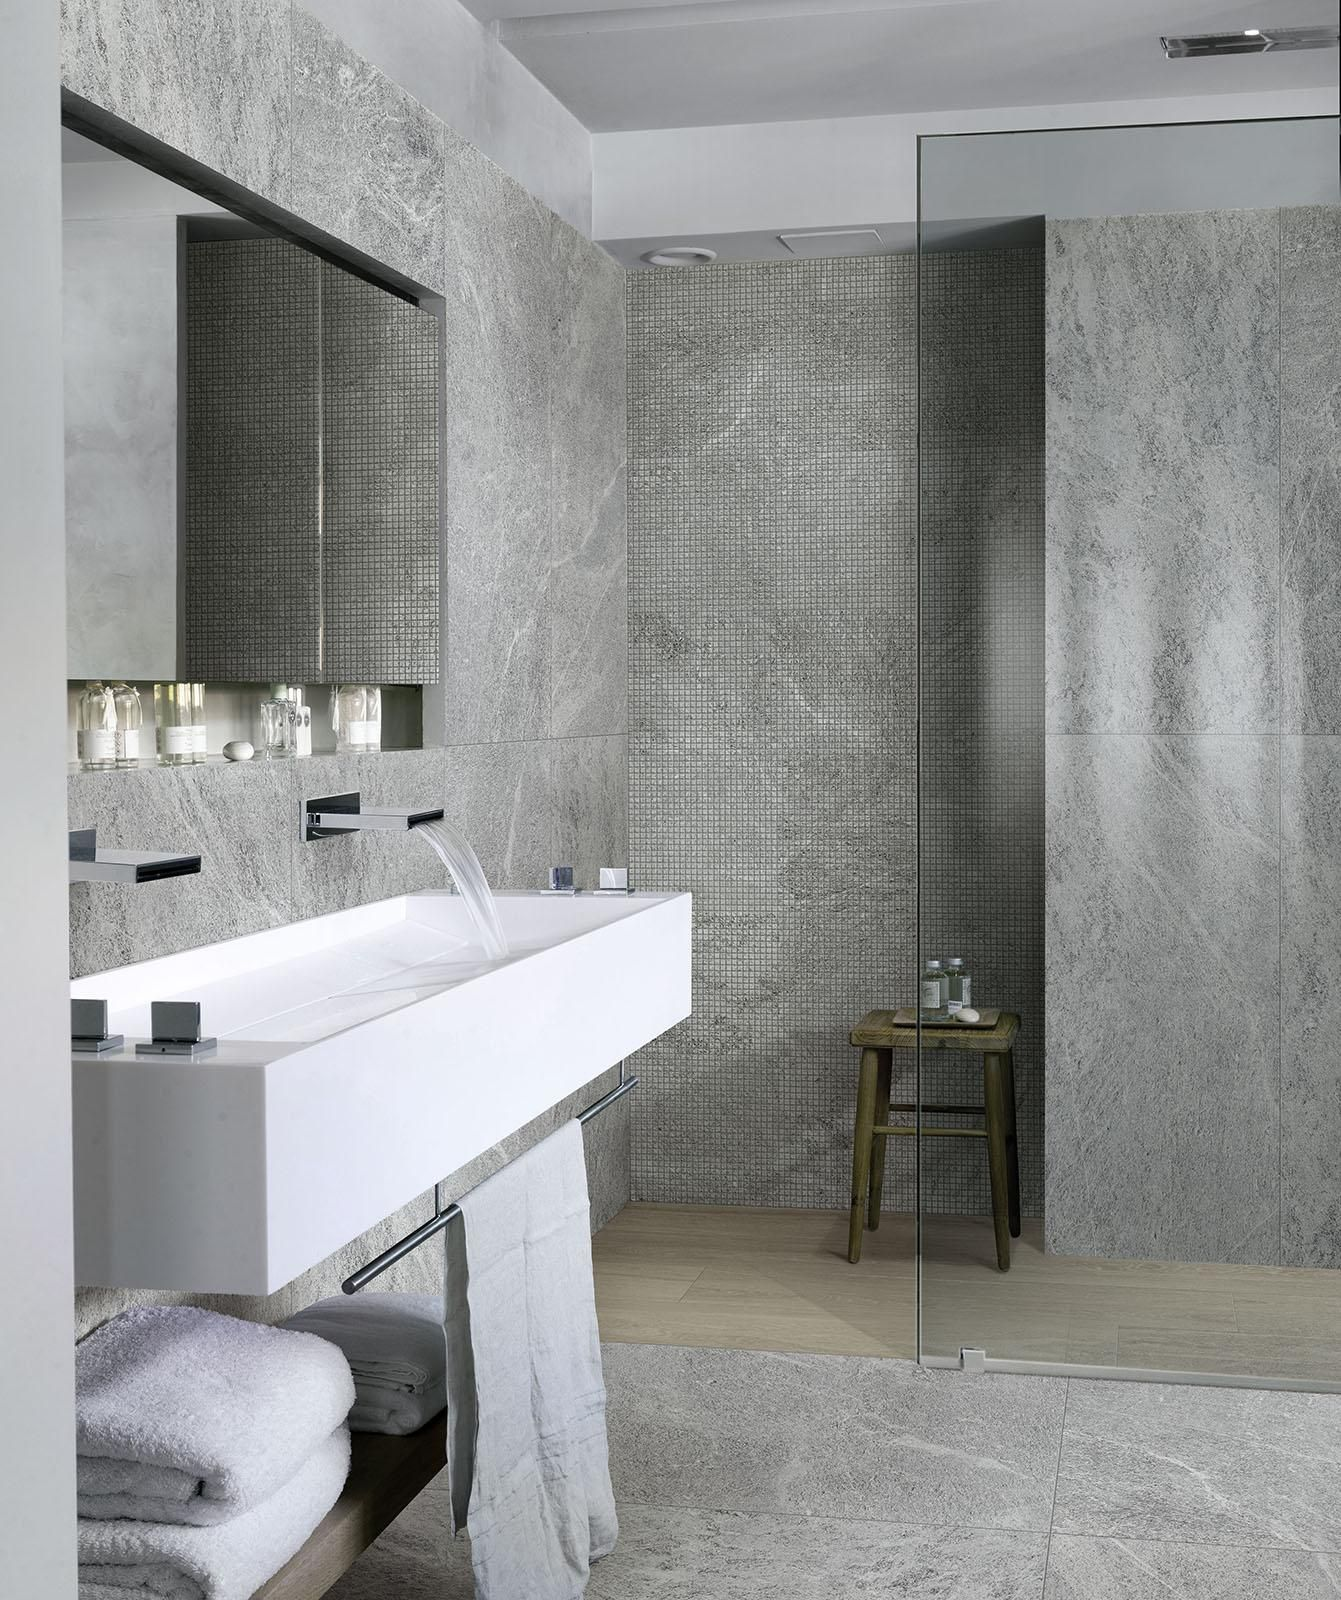 Mystone quarzite Stone Effect Bathroom (con immagini